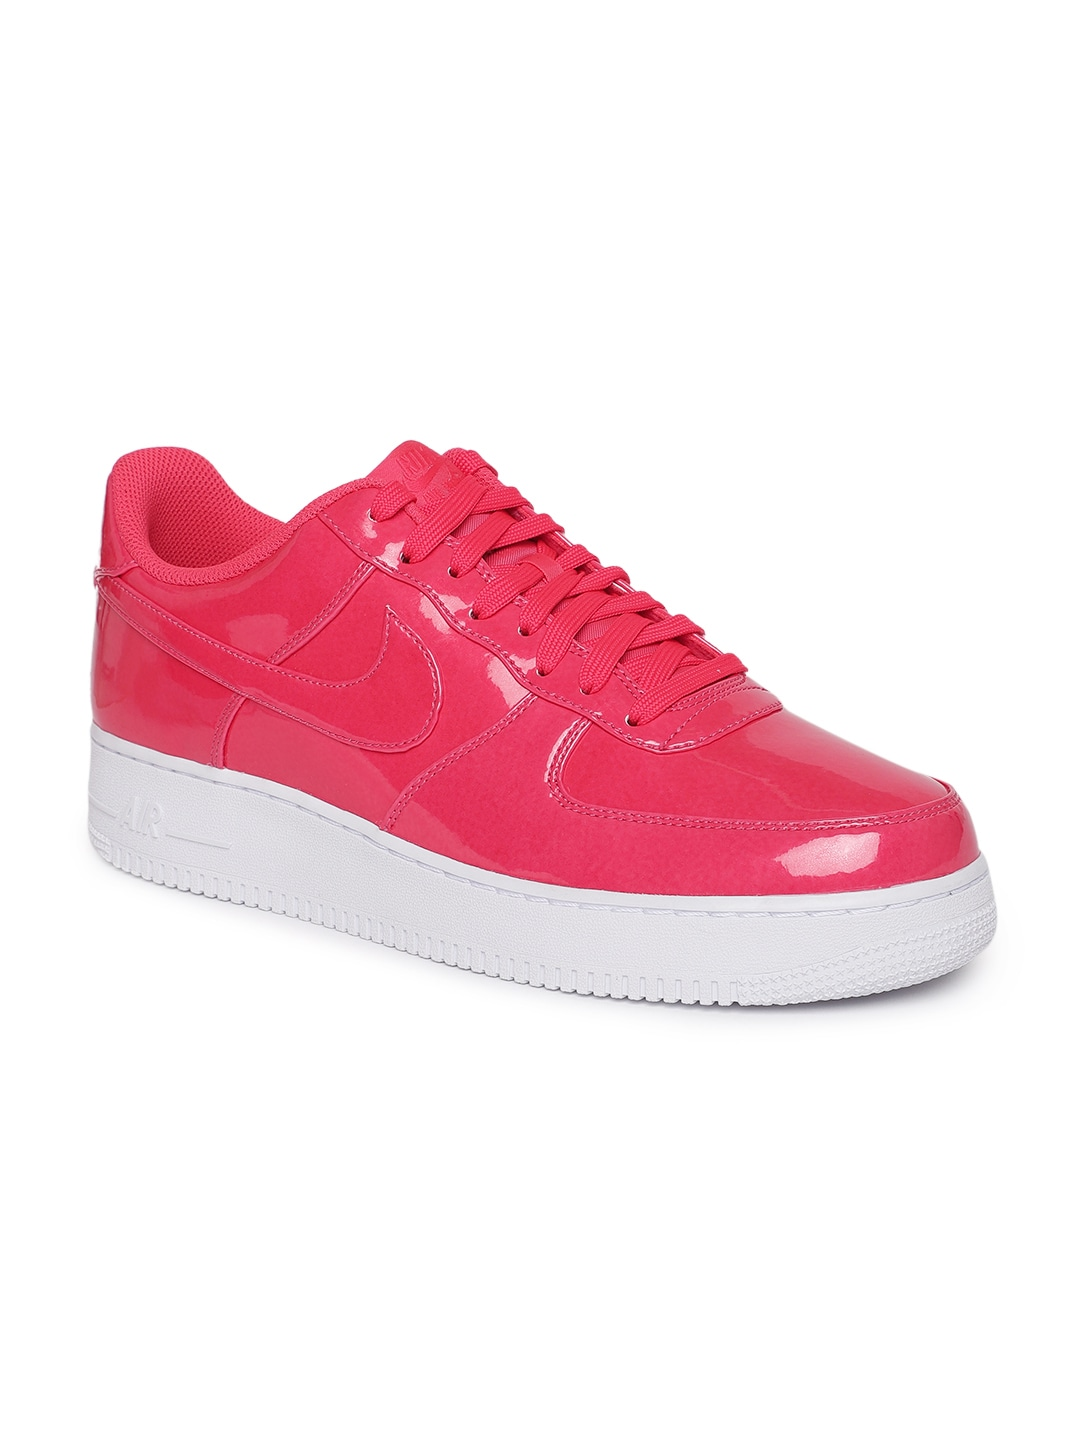 timeless design 5bb09 ae7eb Nike Air Force 1 Casual Shoes - Buy Nike Air Force 1 Casual Shoes online in  India